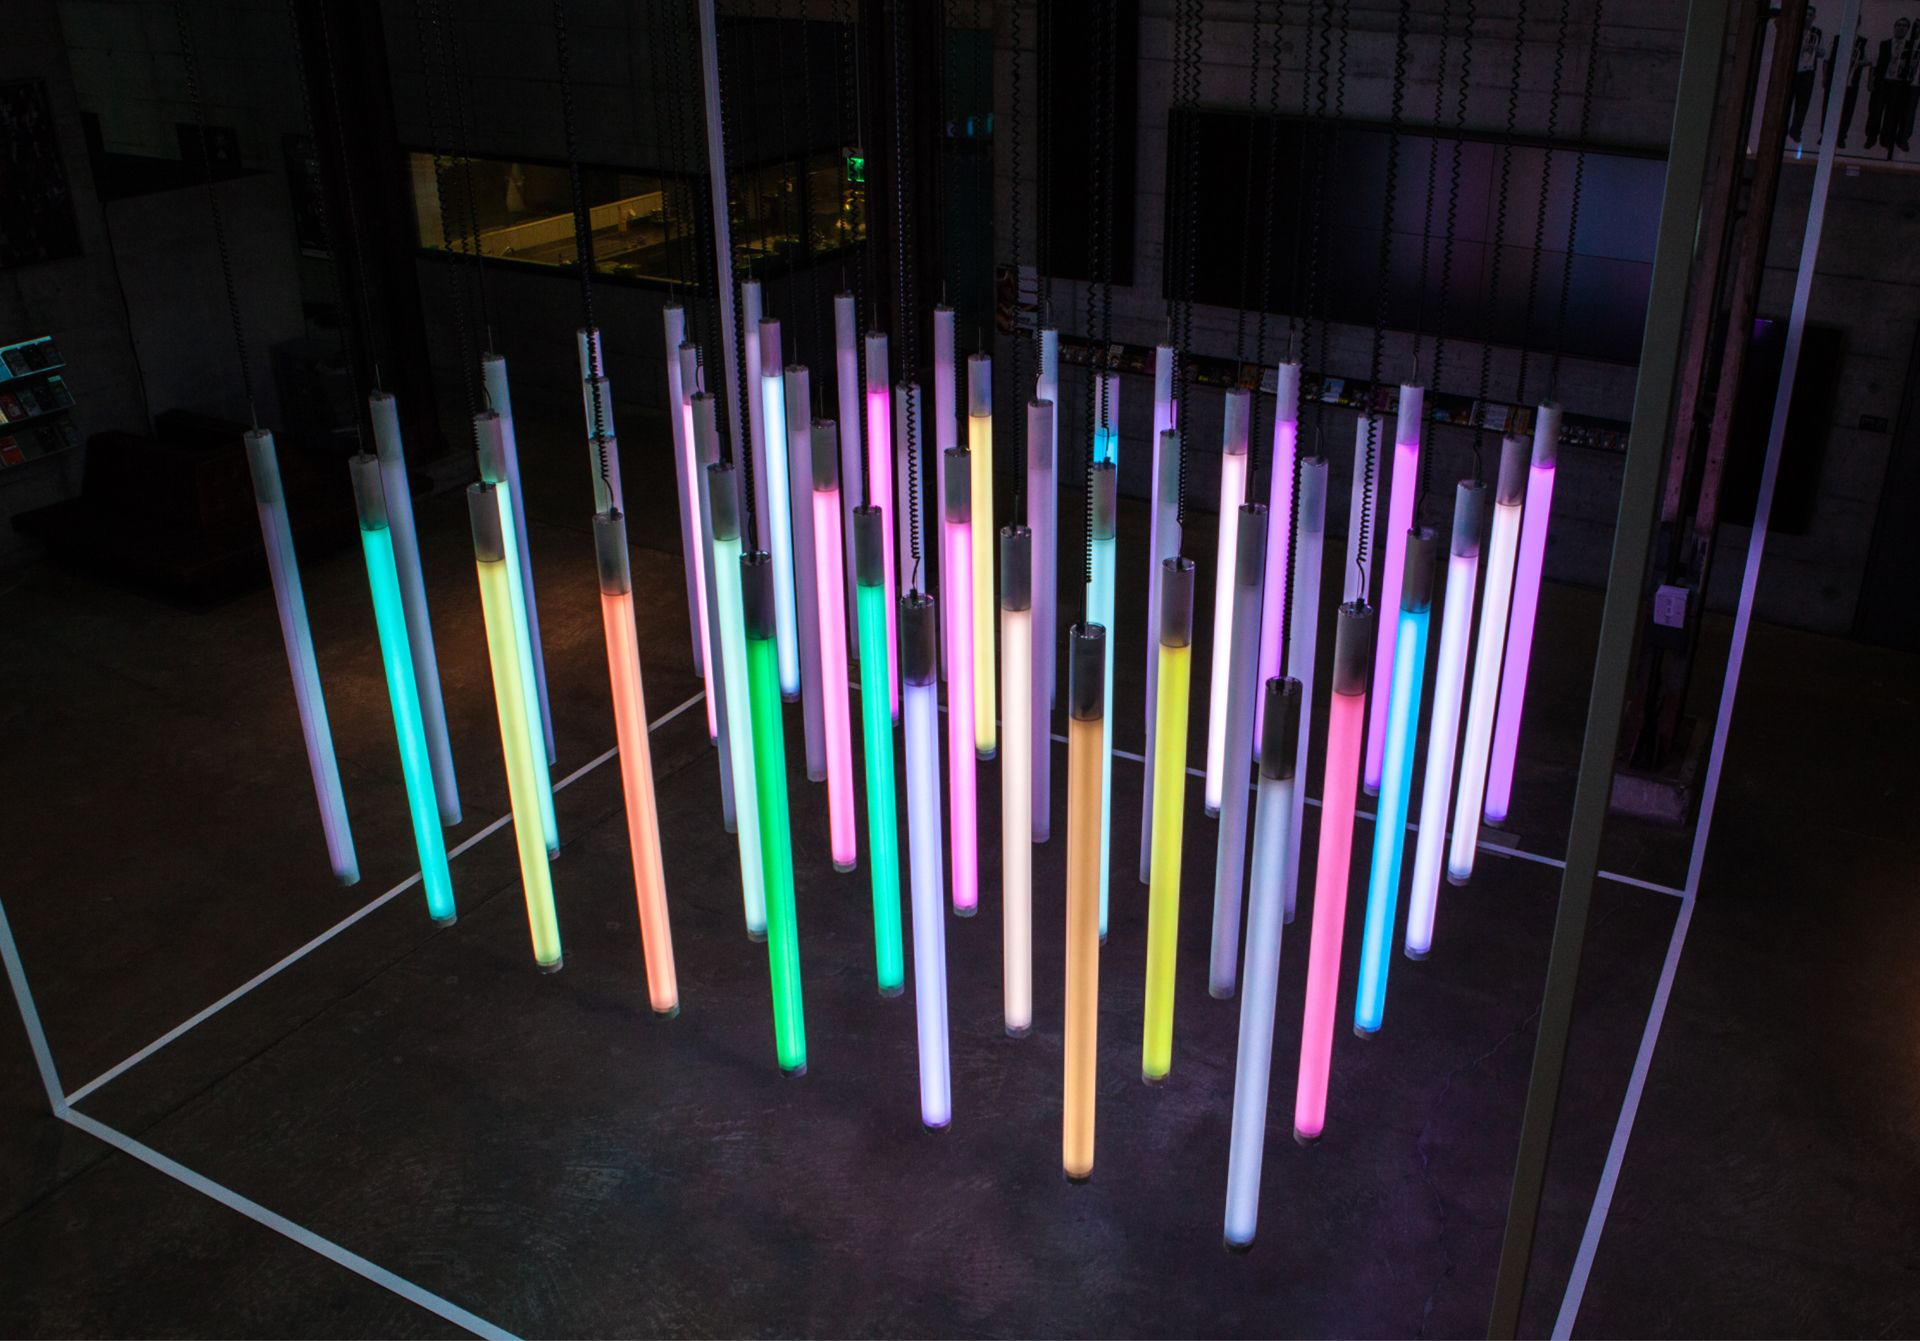 Kinetic Light Installation Installation Magic Light Art Electronics Led Color Motors Tubes Https Wearelucid Ch P Lichtinstallation Lichtideen Licht